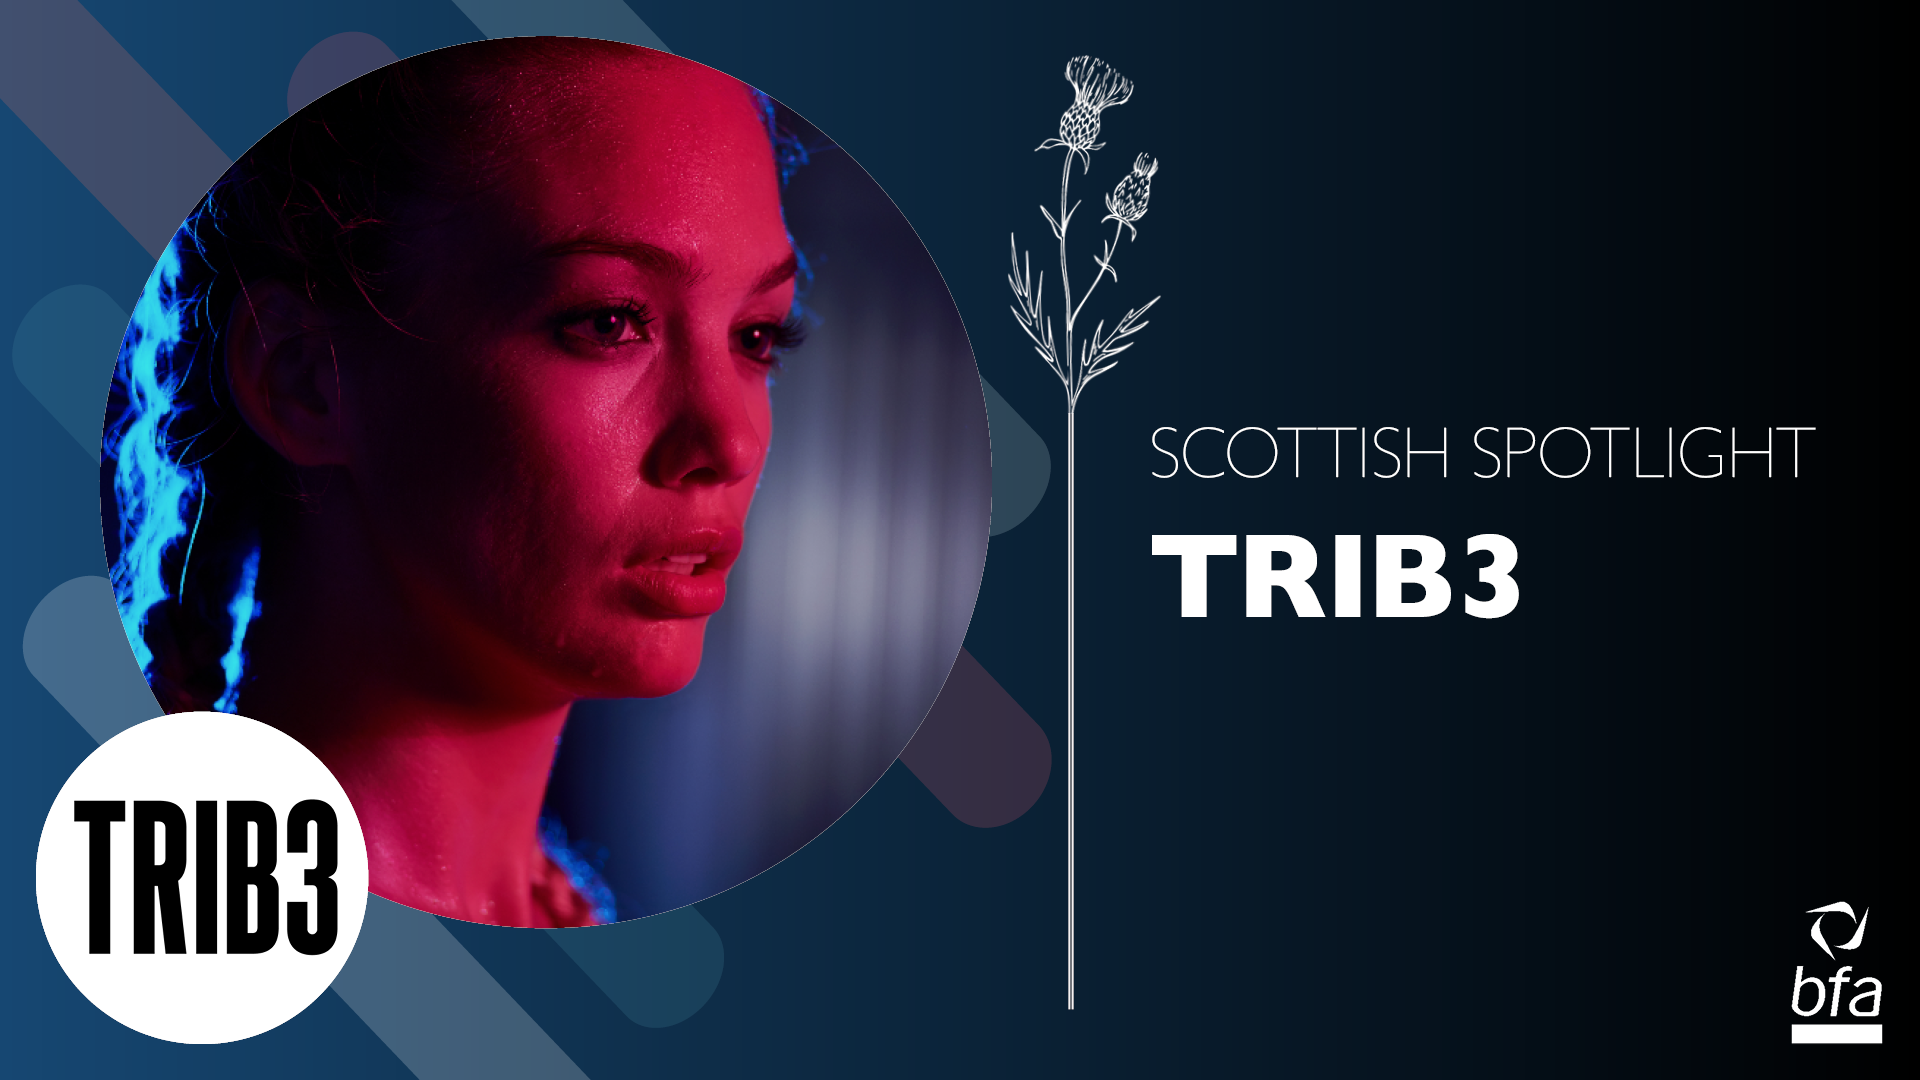 Boutique fitness concept, TRIB3, set to open four stores in Scotland as part of major global expansion.